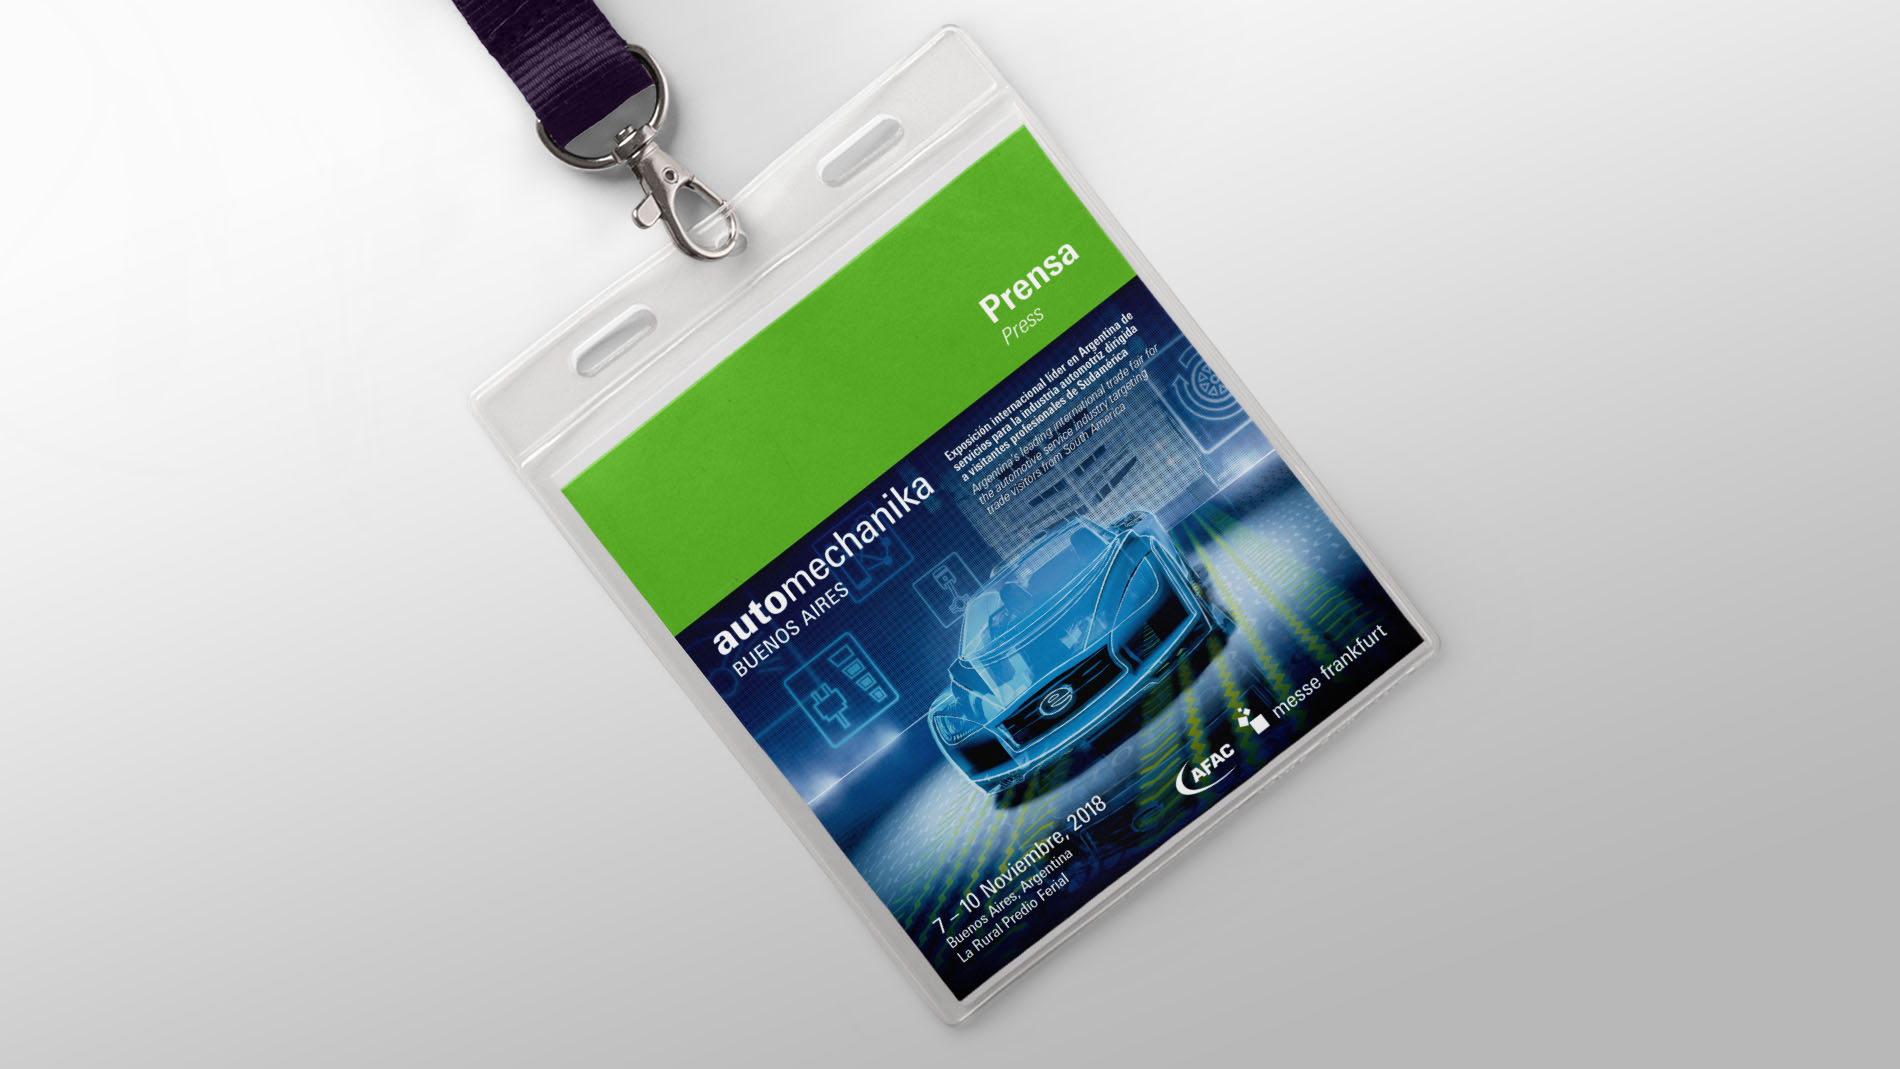 Automechanika Buenos Aires - Press accreditation